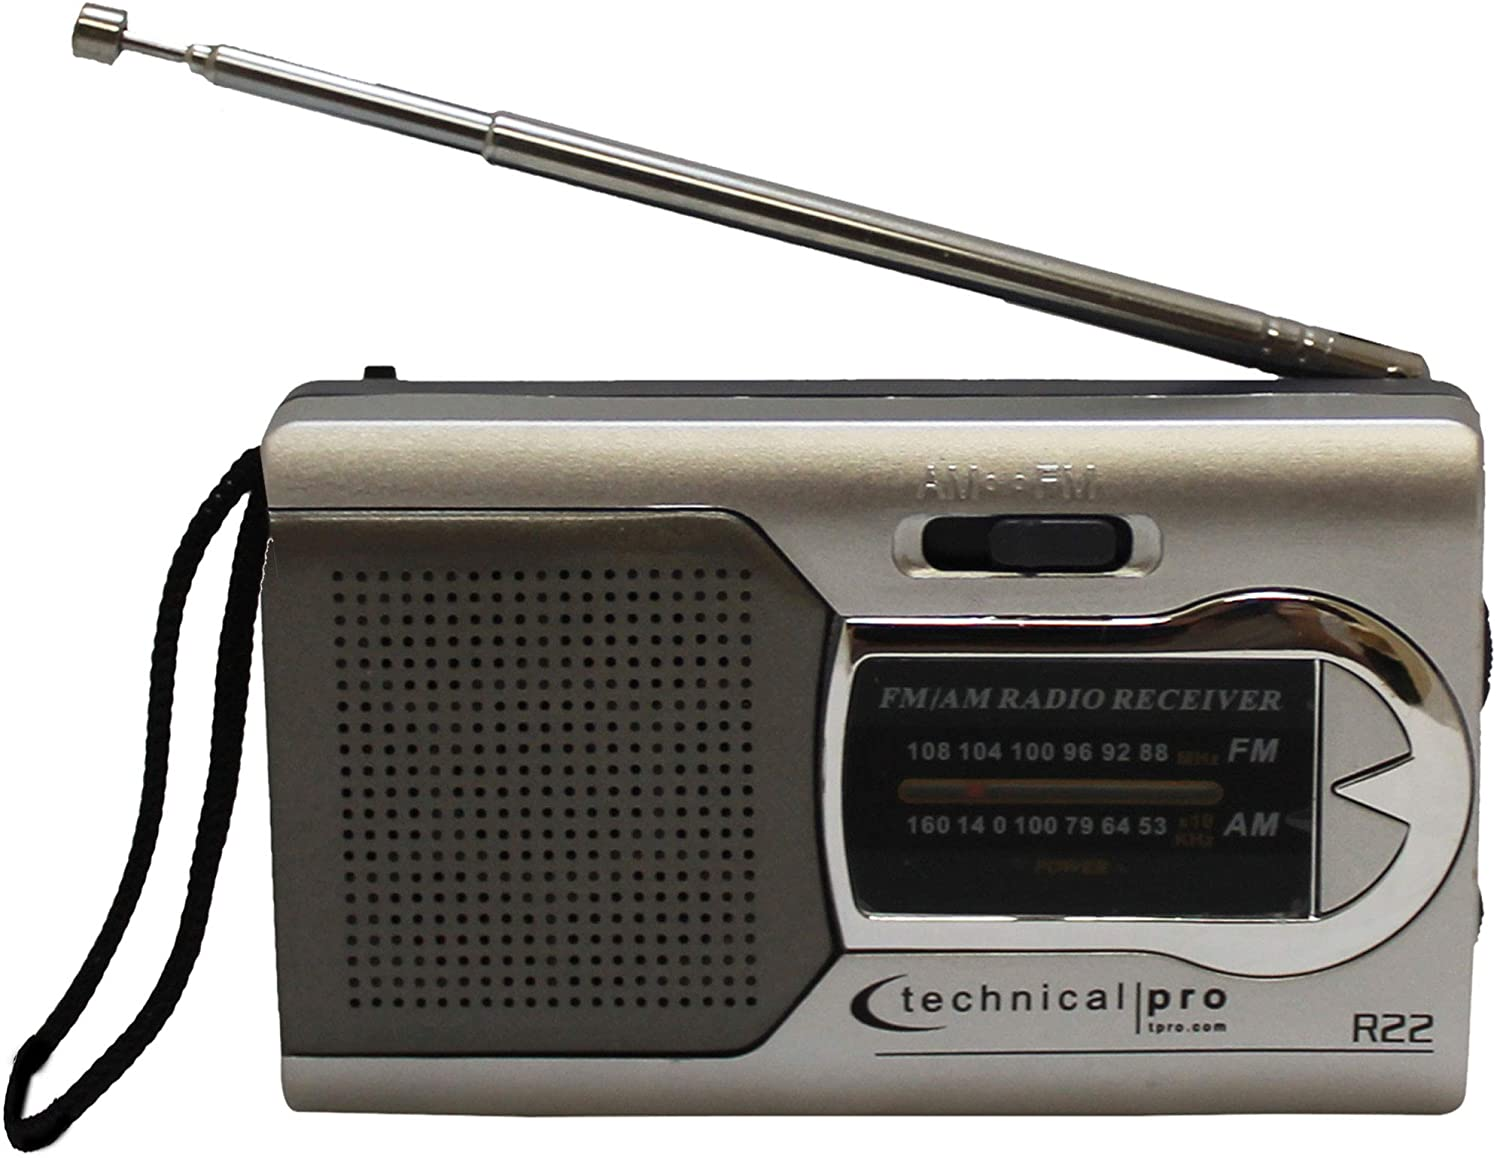 Technical Pro Battery-Powered AM/FM Radio Portable Speaker, Handheld Radio with Speaker Manual Tuner, Headphone Jack, Adjustable Antenna, Durable Design - for Home and Outdoor